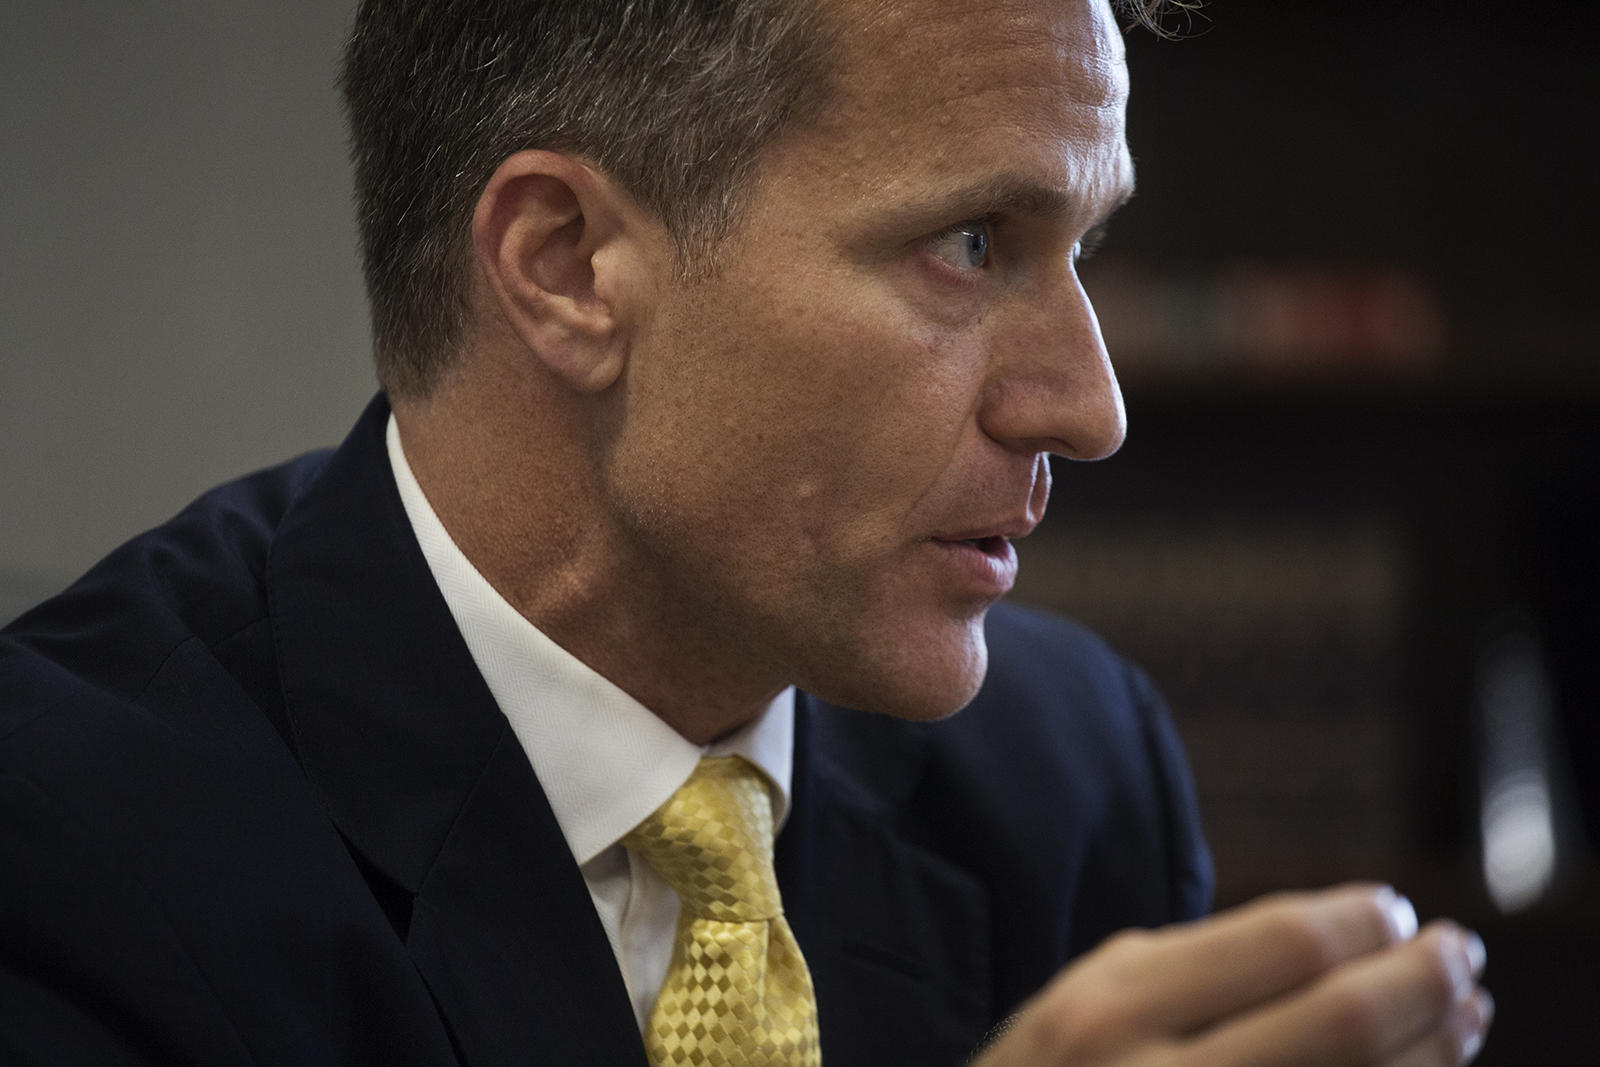 Missouri Gov. Eric Greitens admitted to an extramarital affair before he became an elected official